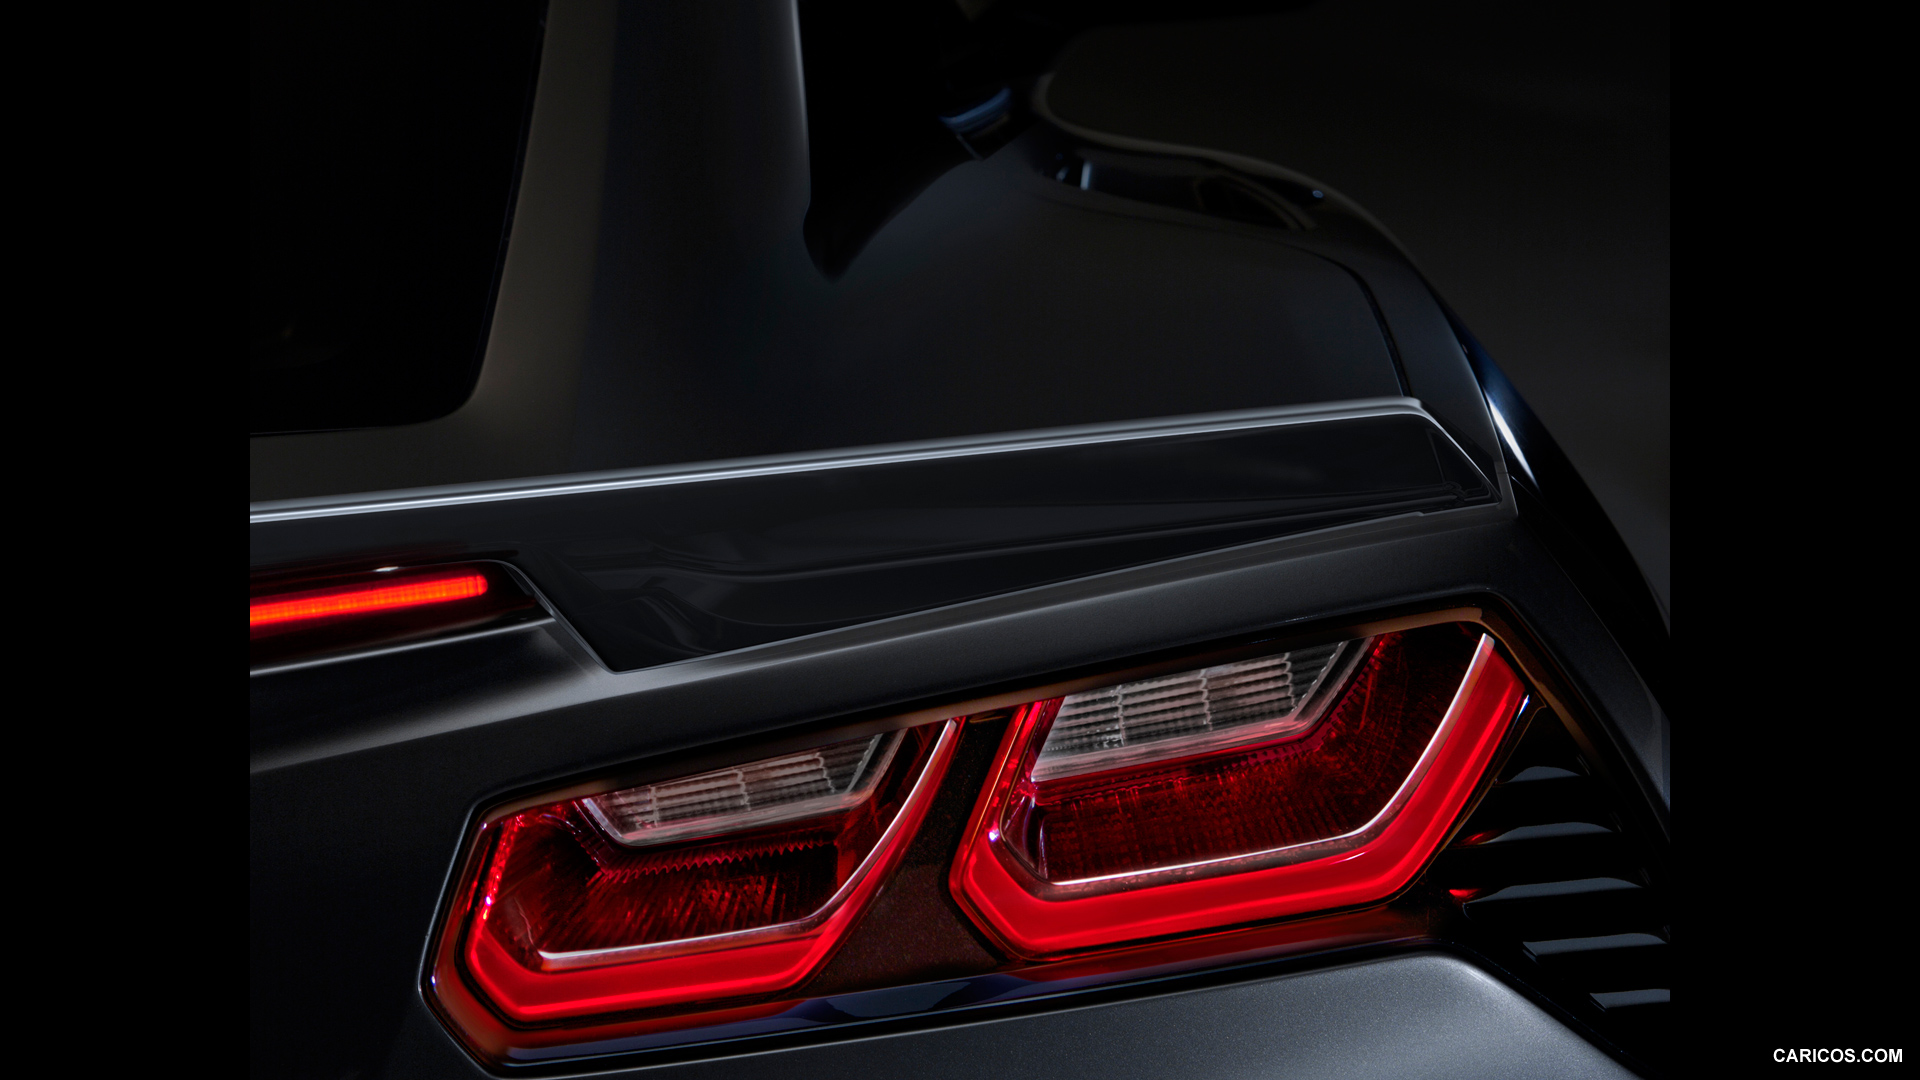 2014 Chevrolet Corvette Stingray Tail Light - Wallpaper